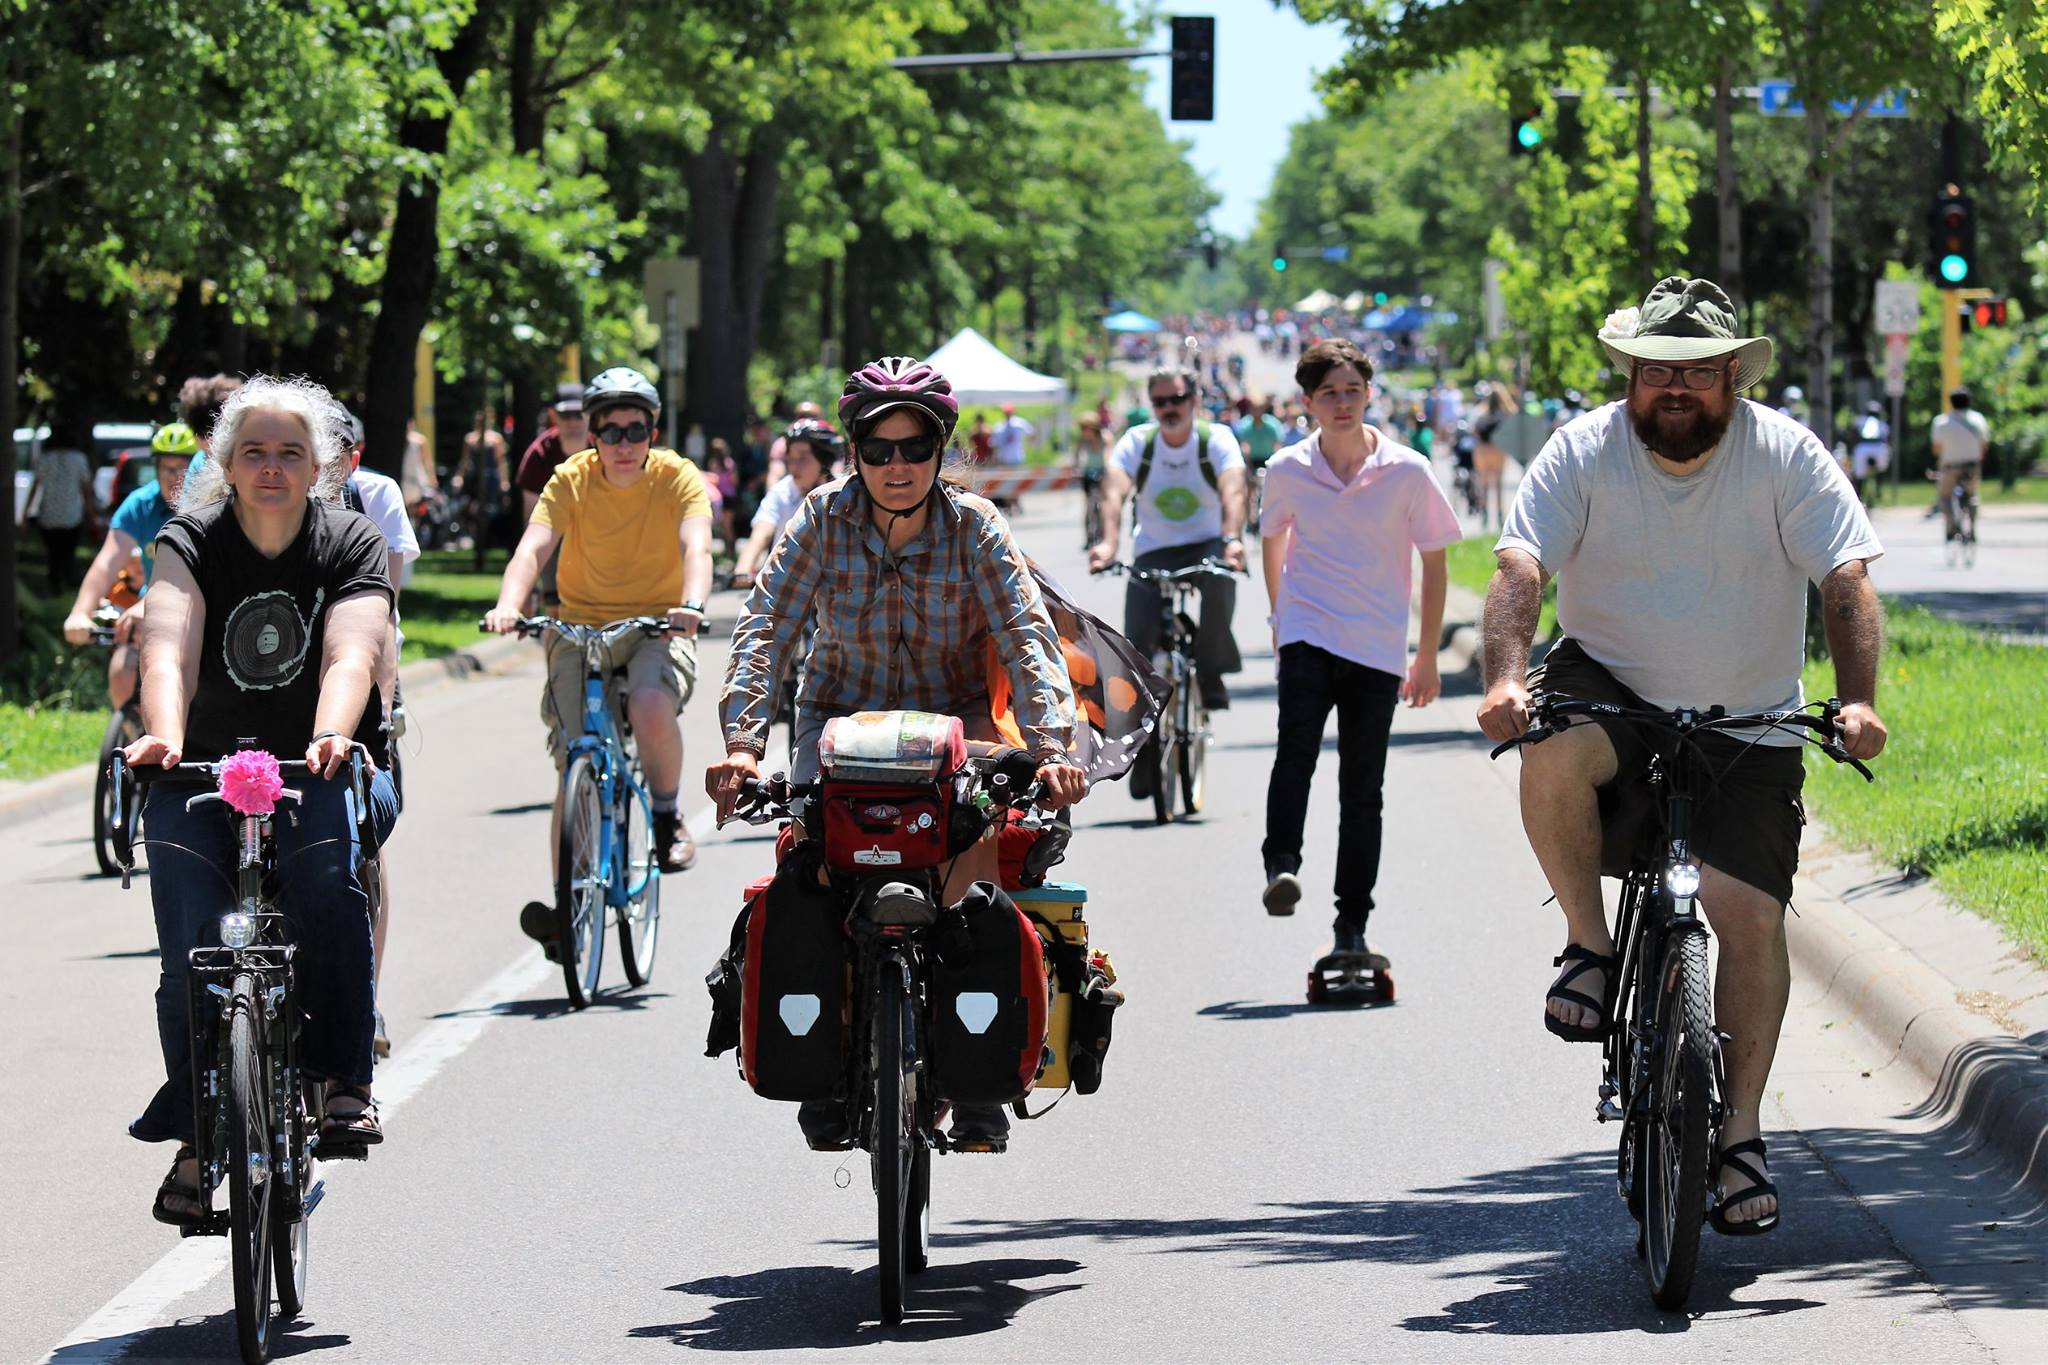 Sue, Chris, and I enjoy Open Streets, a day in Minneapolis where people and culture and community are not scared away by cars.